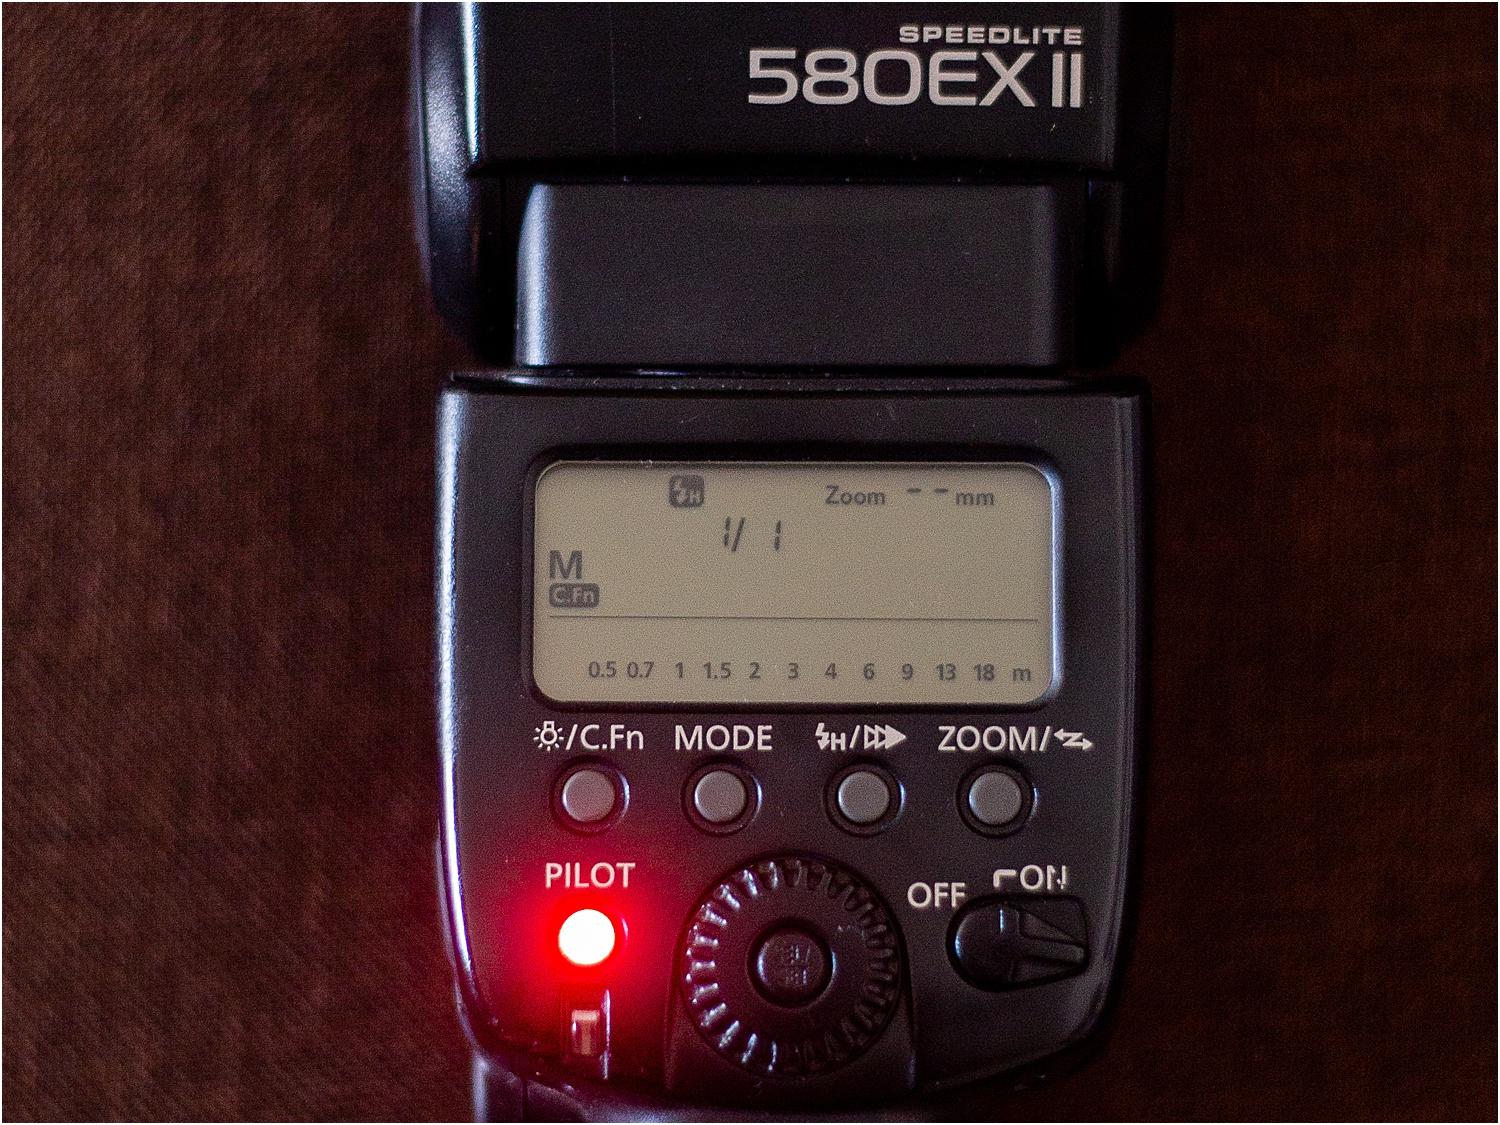 4 - Using Manual Mode on Your External Flash